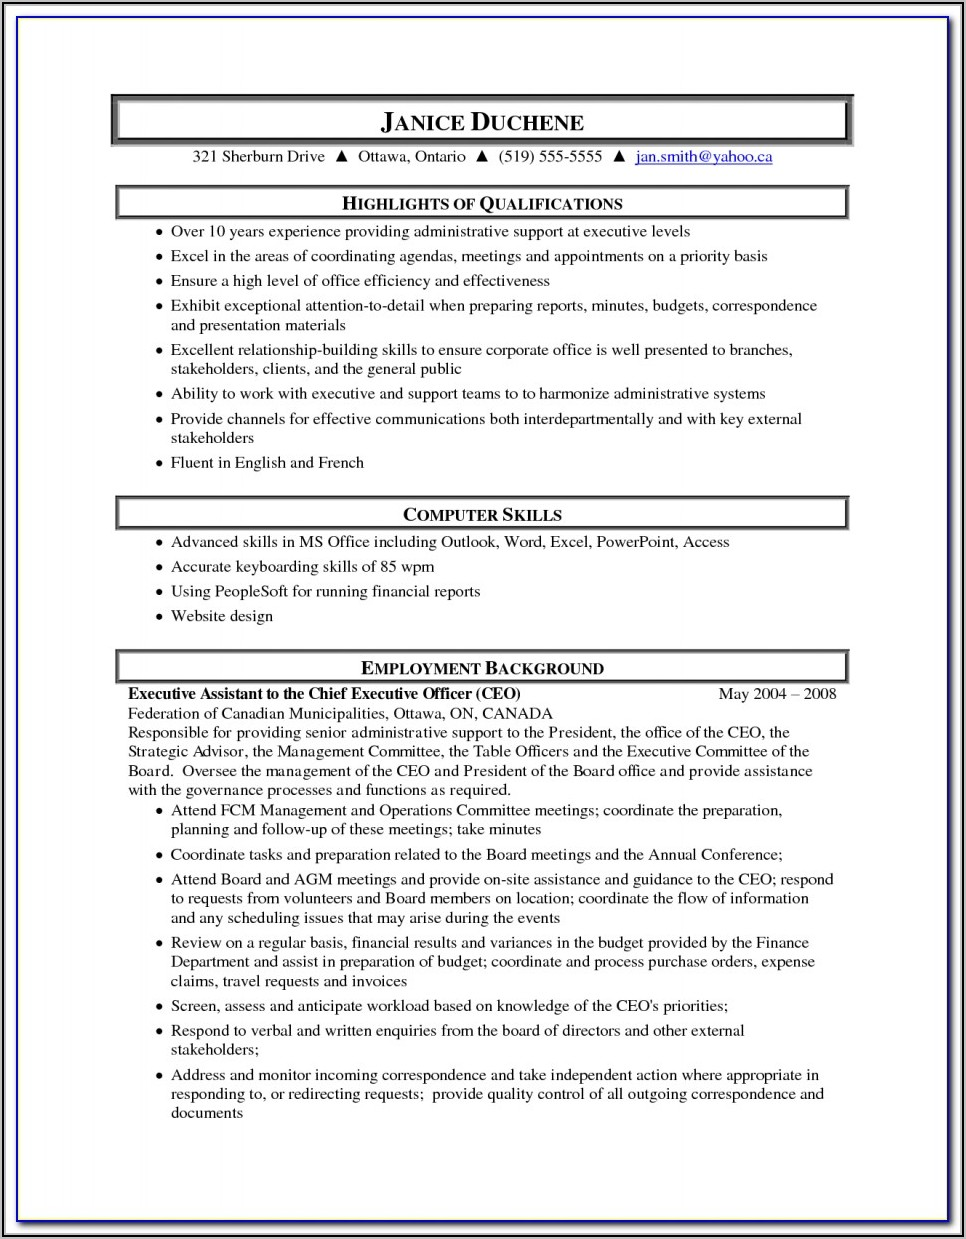 Cover Letter Examples For Medical Office Assistant With No Experience